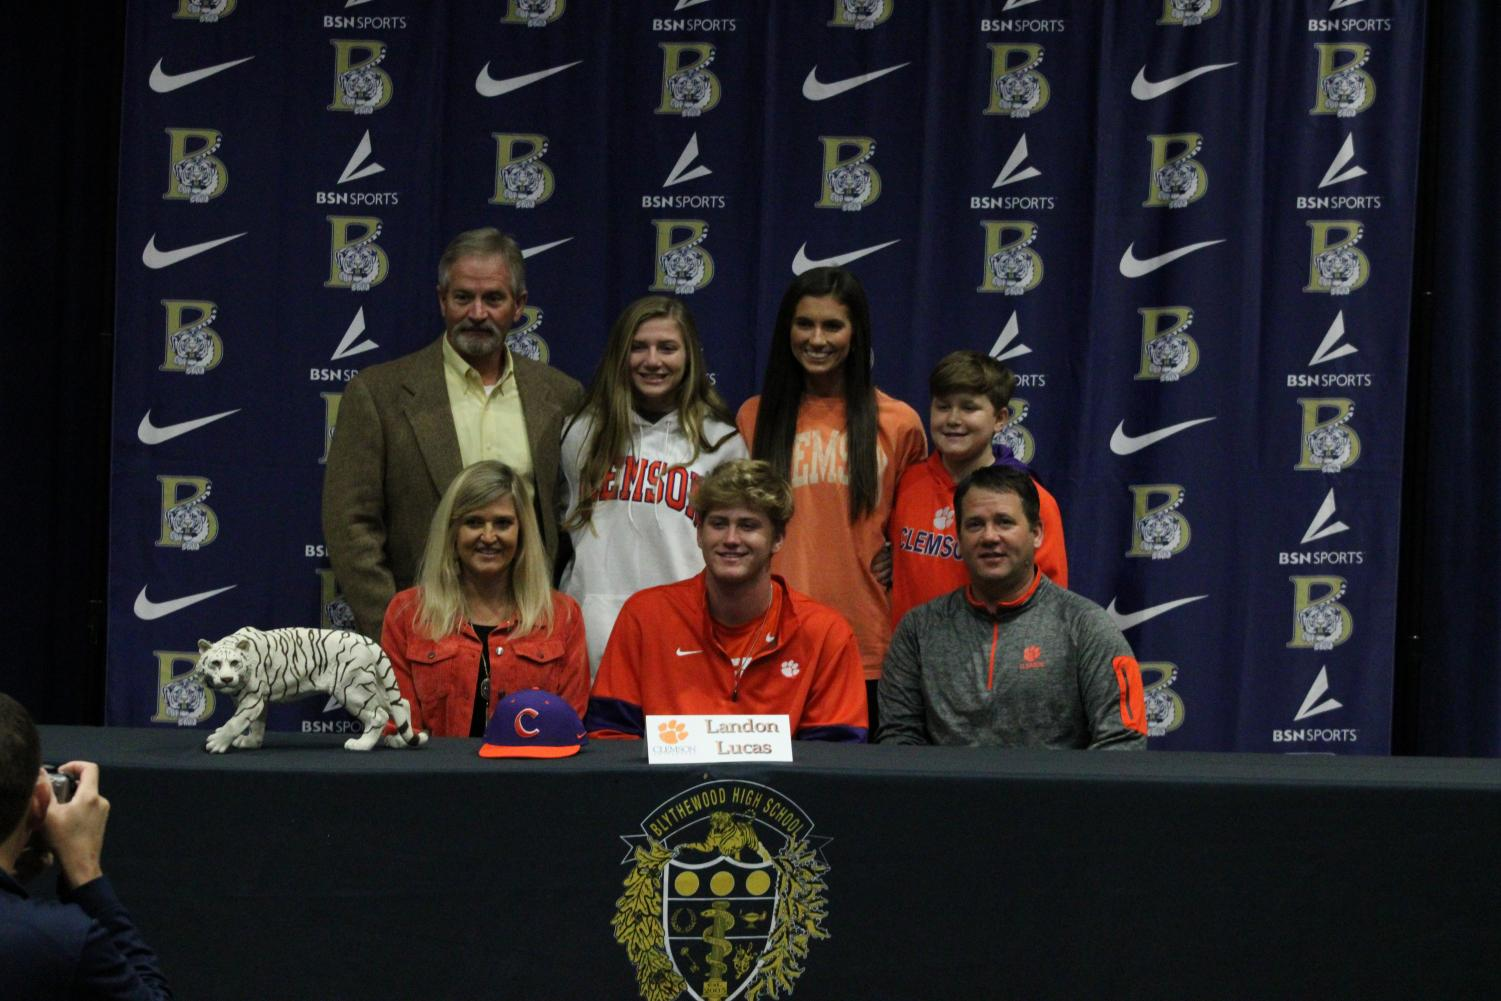 Landon+Lucas+signs+to+play+baseball+at+Clemson+University.